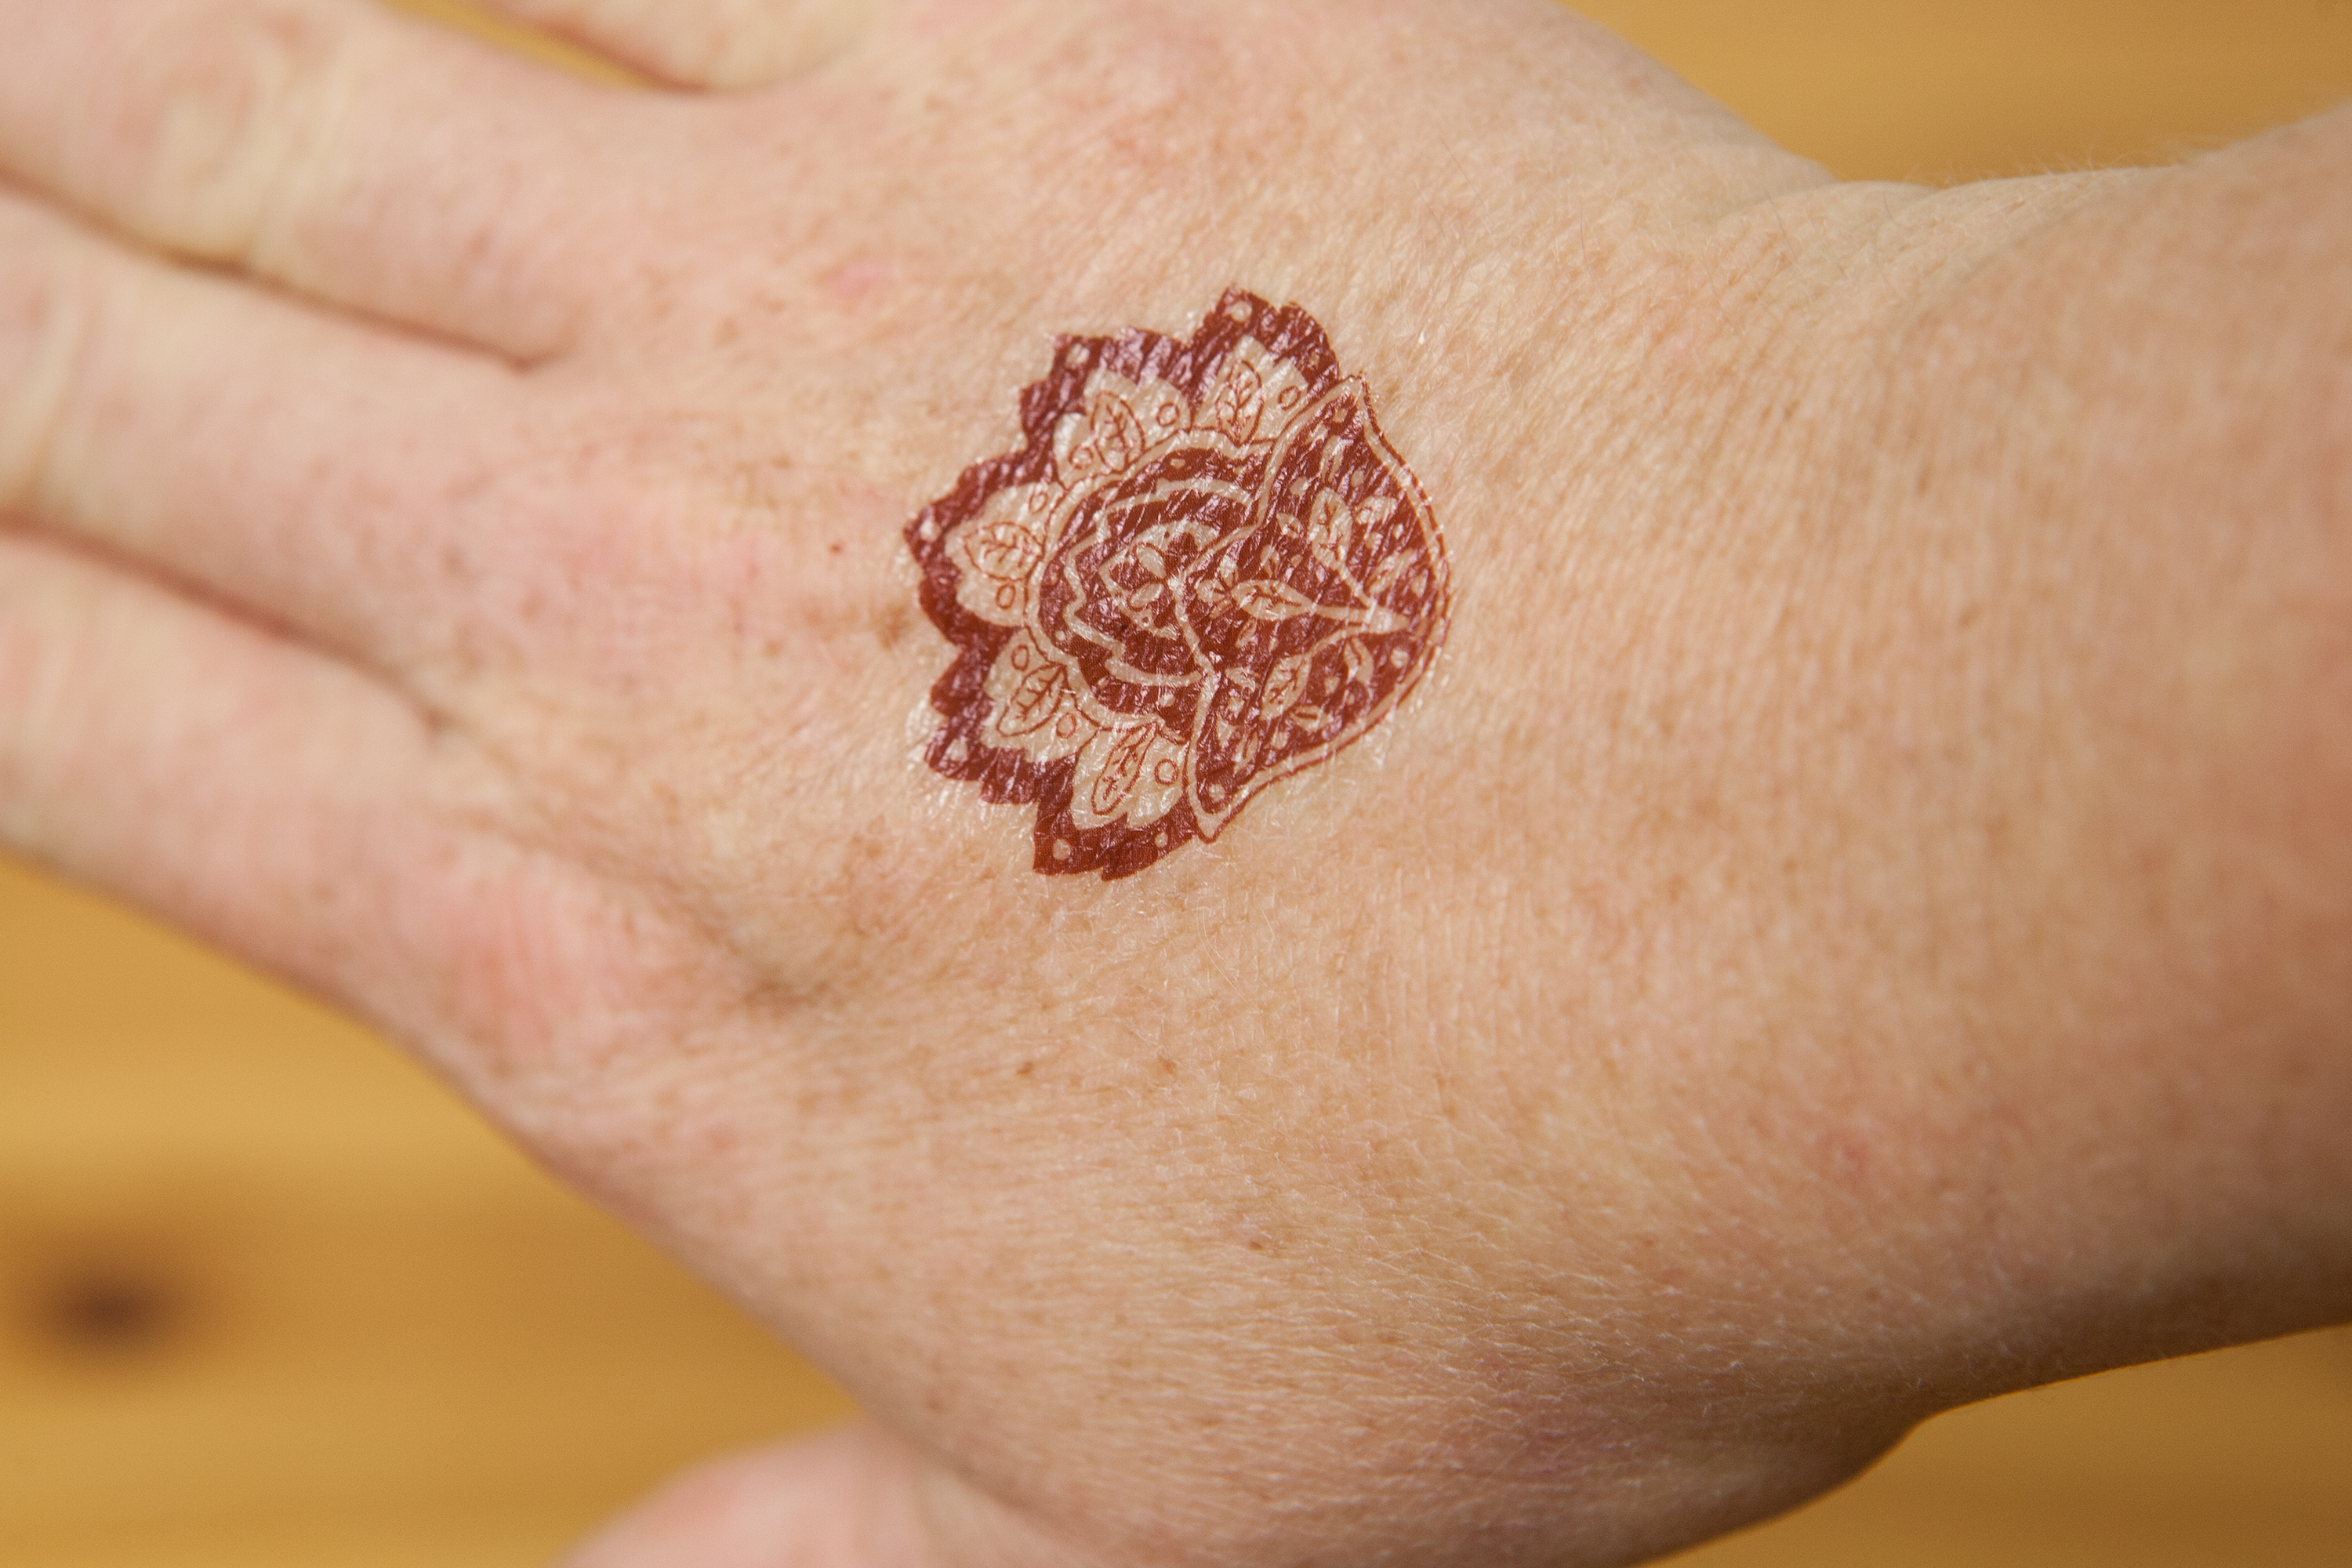 How to Remove Henna Tattoo Ink | LEAFtv